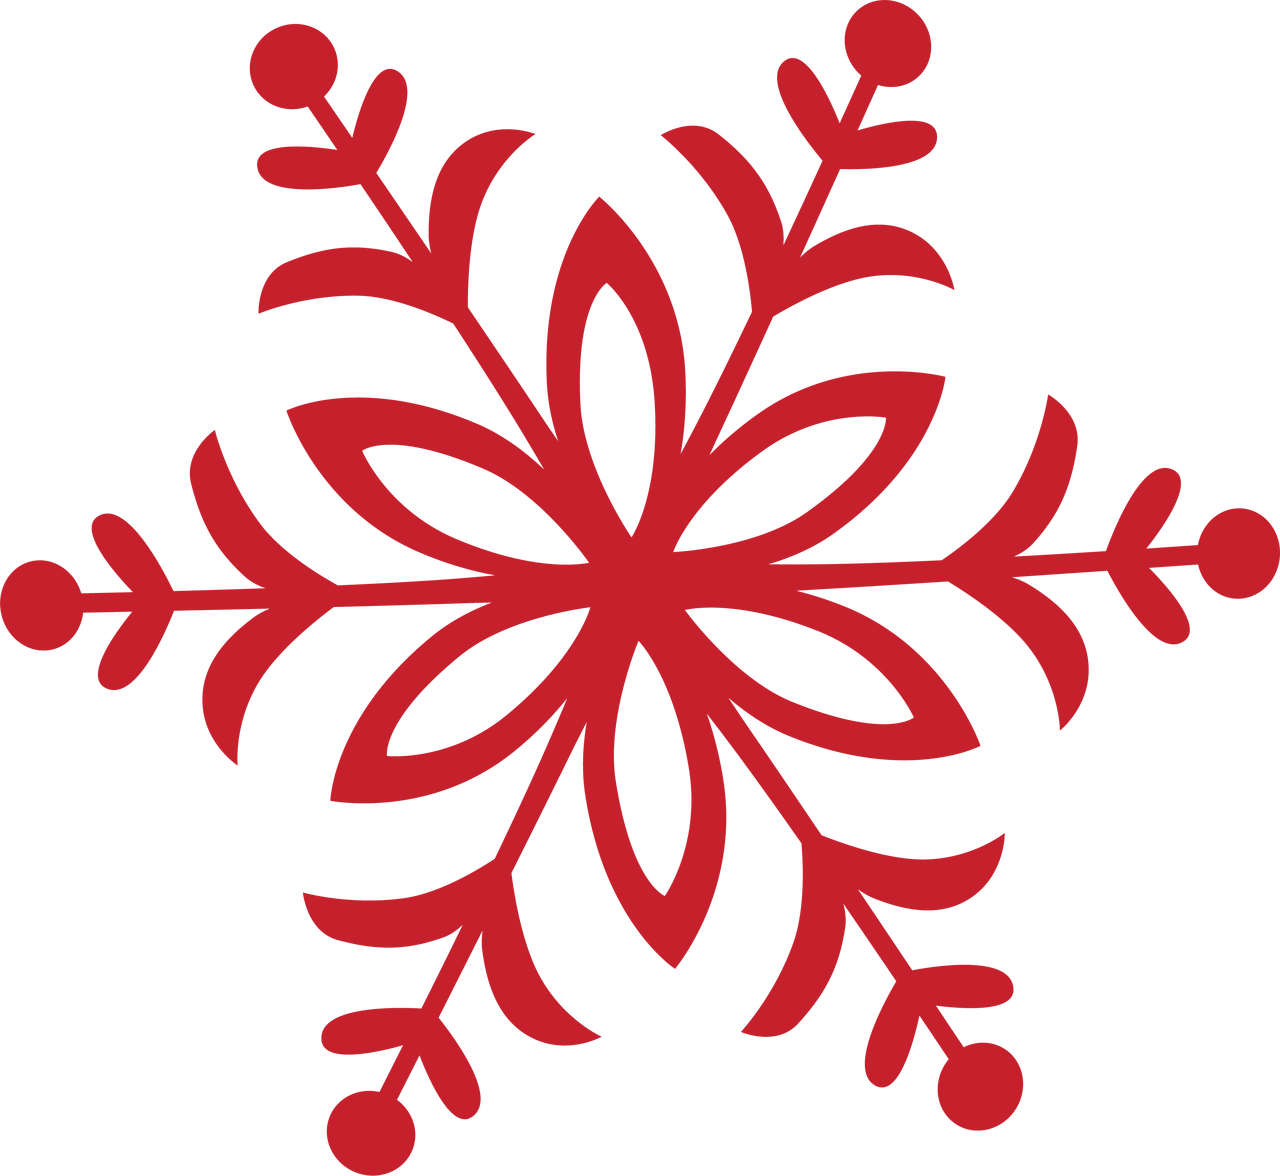 Merry Bright Snowflake 5 Svg Cut File Snap Click Supply Co